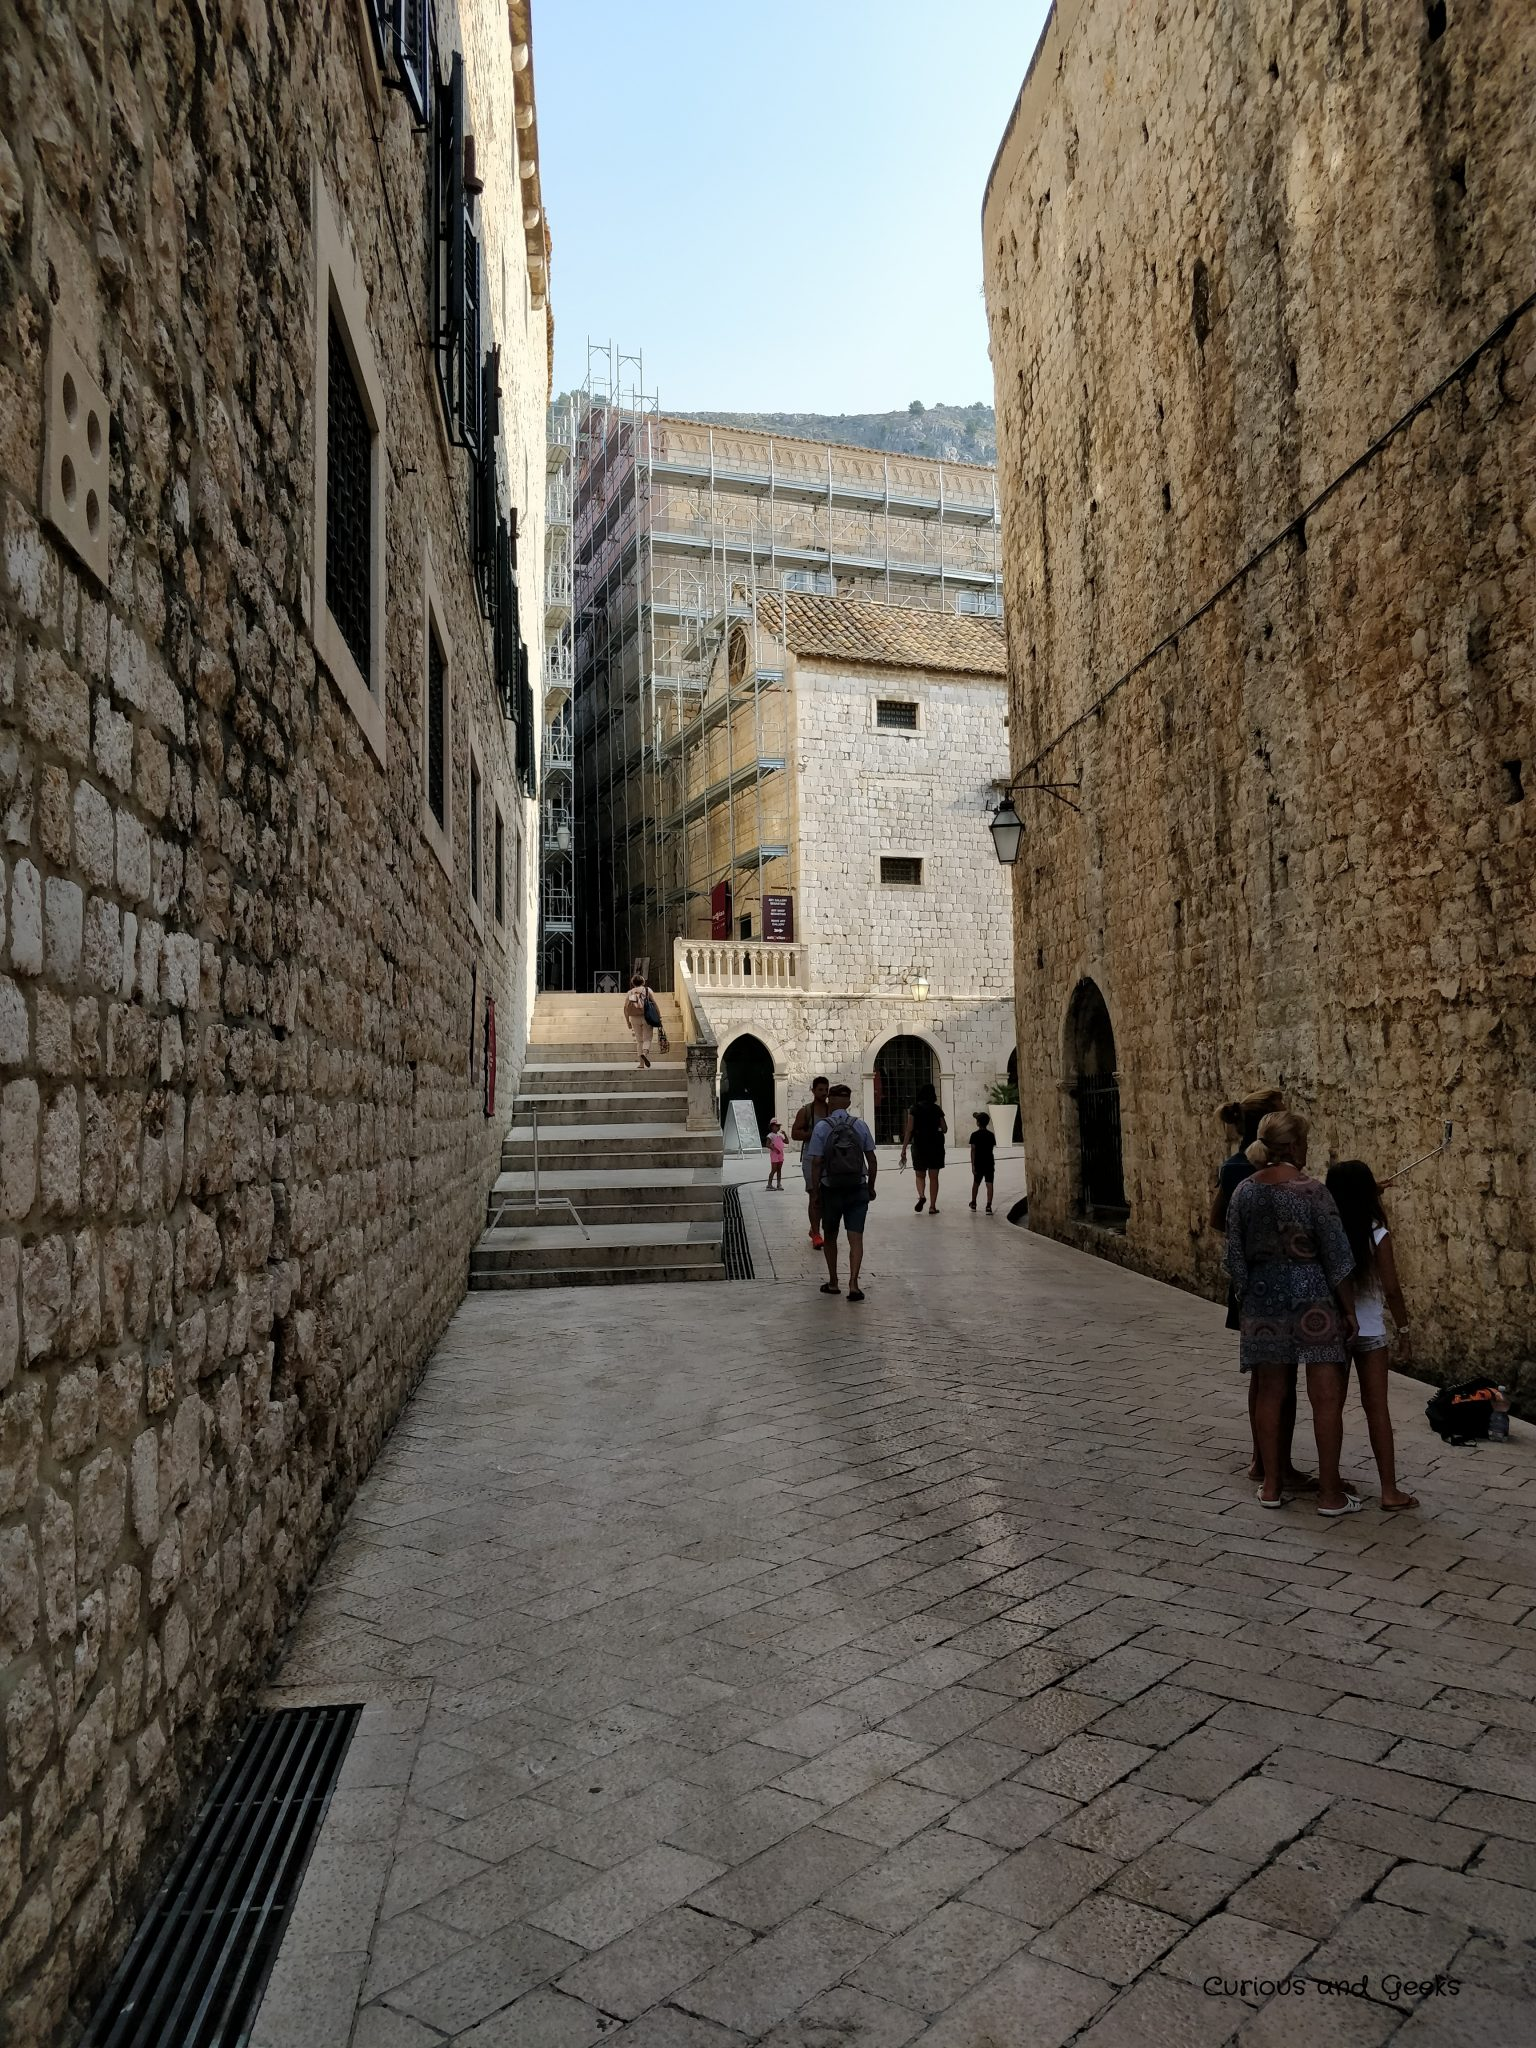 5.St Dominic Street - Game of Thrones filming locations in Dubrovnik